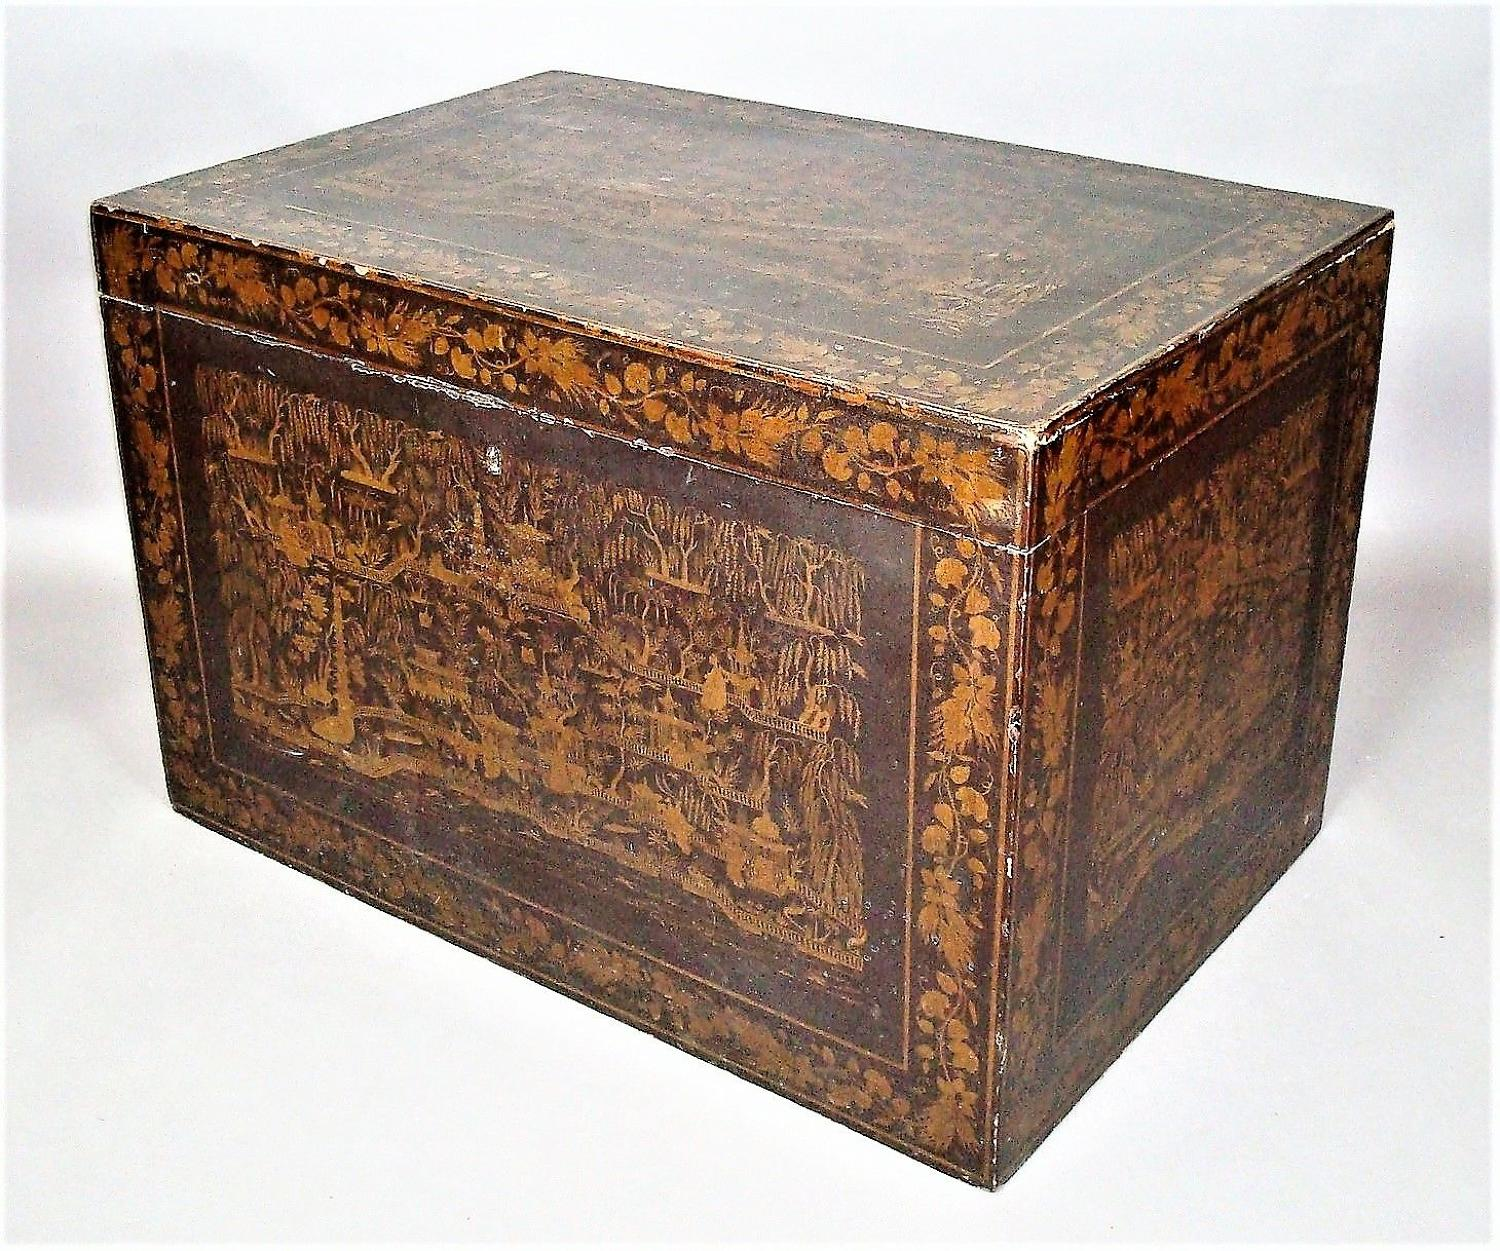 C19th Indian Chinoiserie lacquered trunk